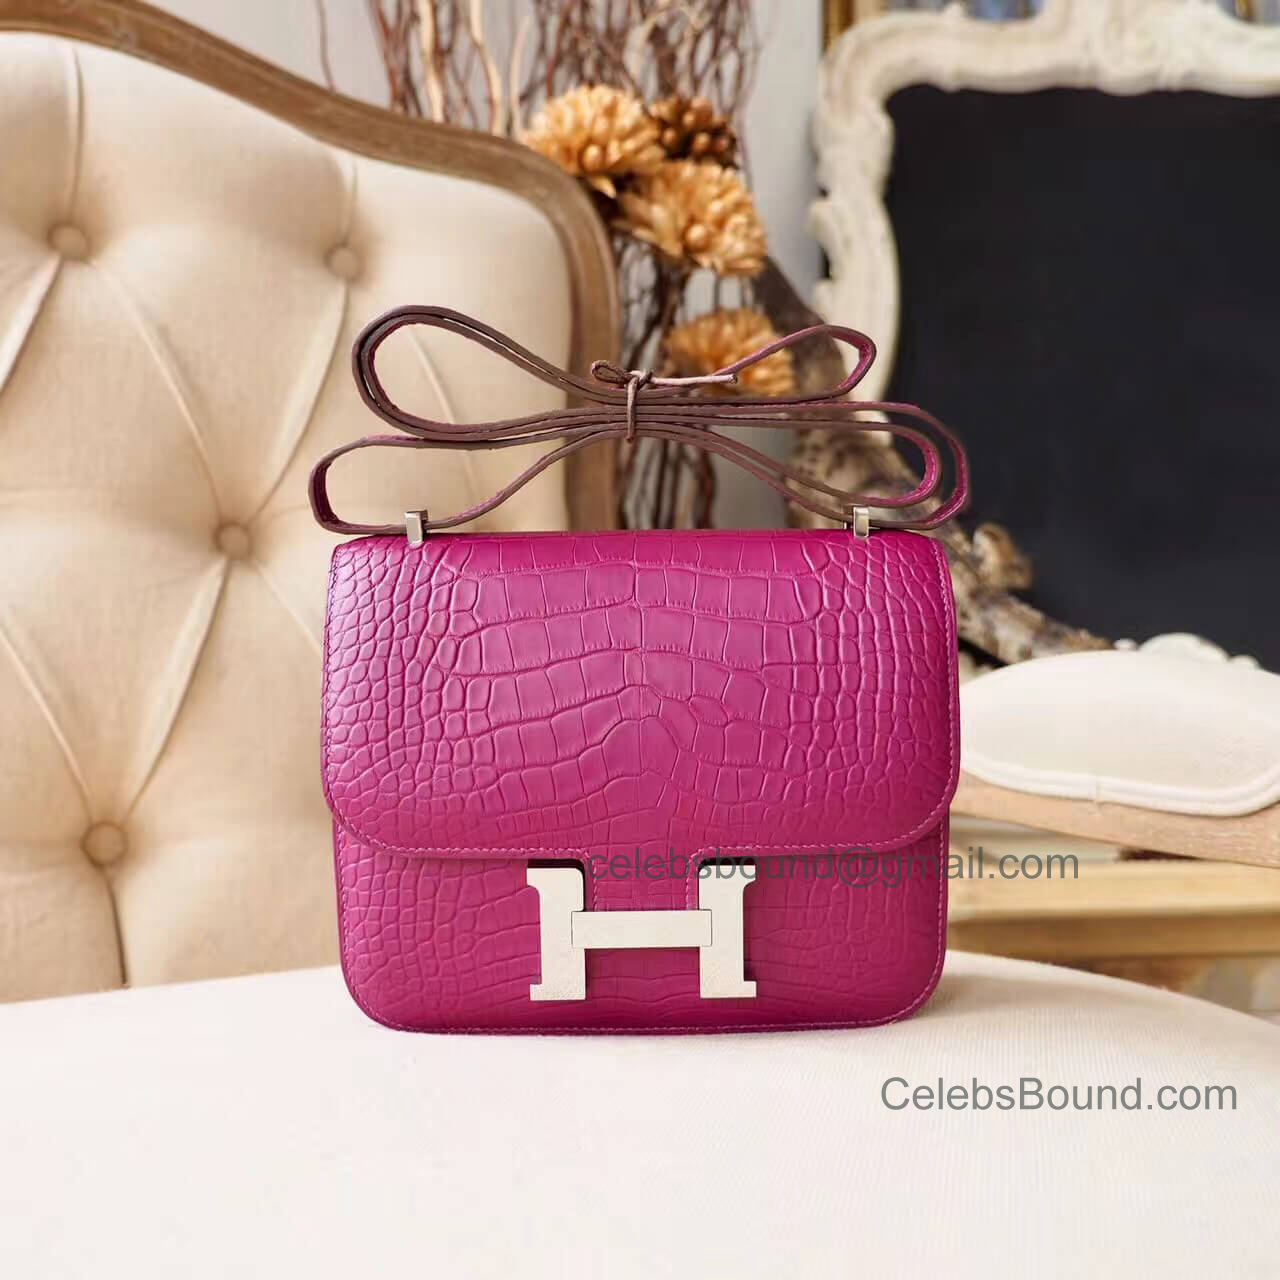 Replica Hermes Mini Constance 18 Bag in 5h Cyclamen Matte Alligator PHW